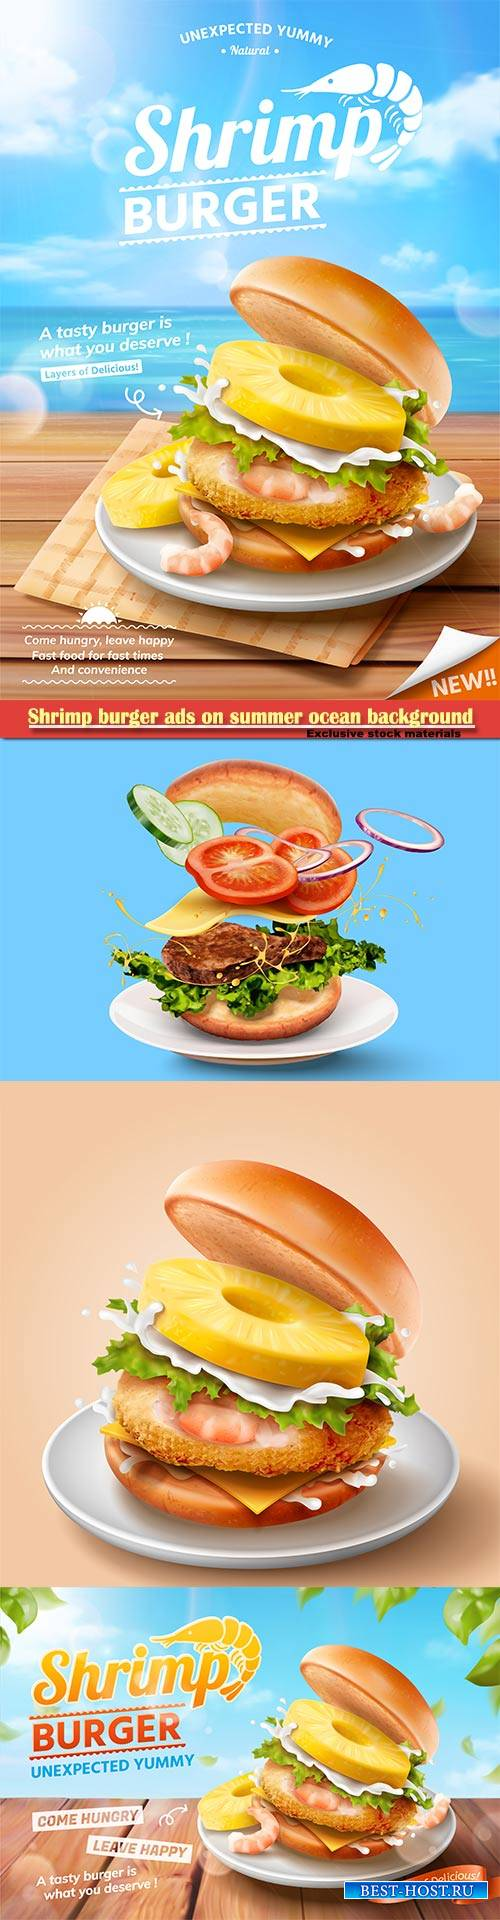 Shrimp burger ads on summer ocean background in 3d illustration